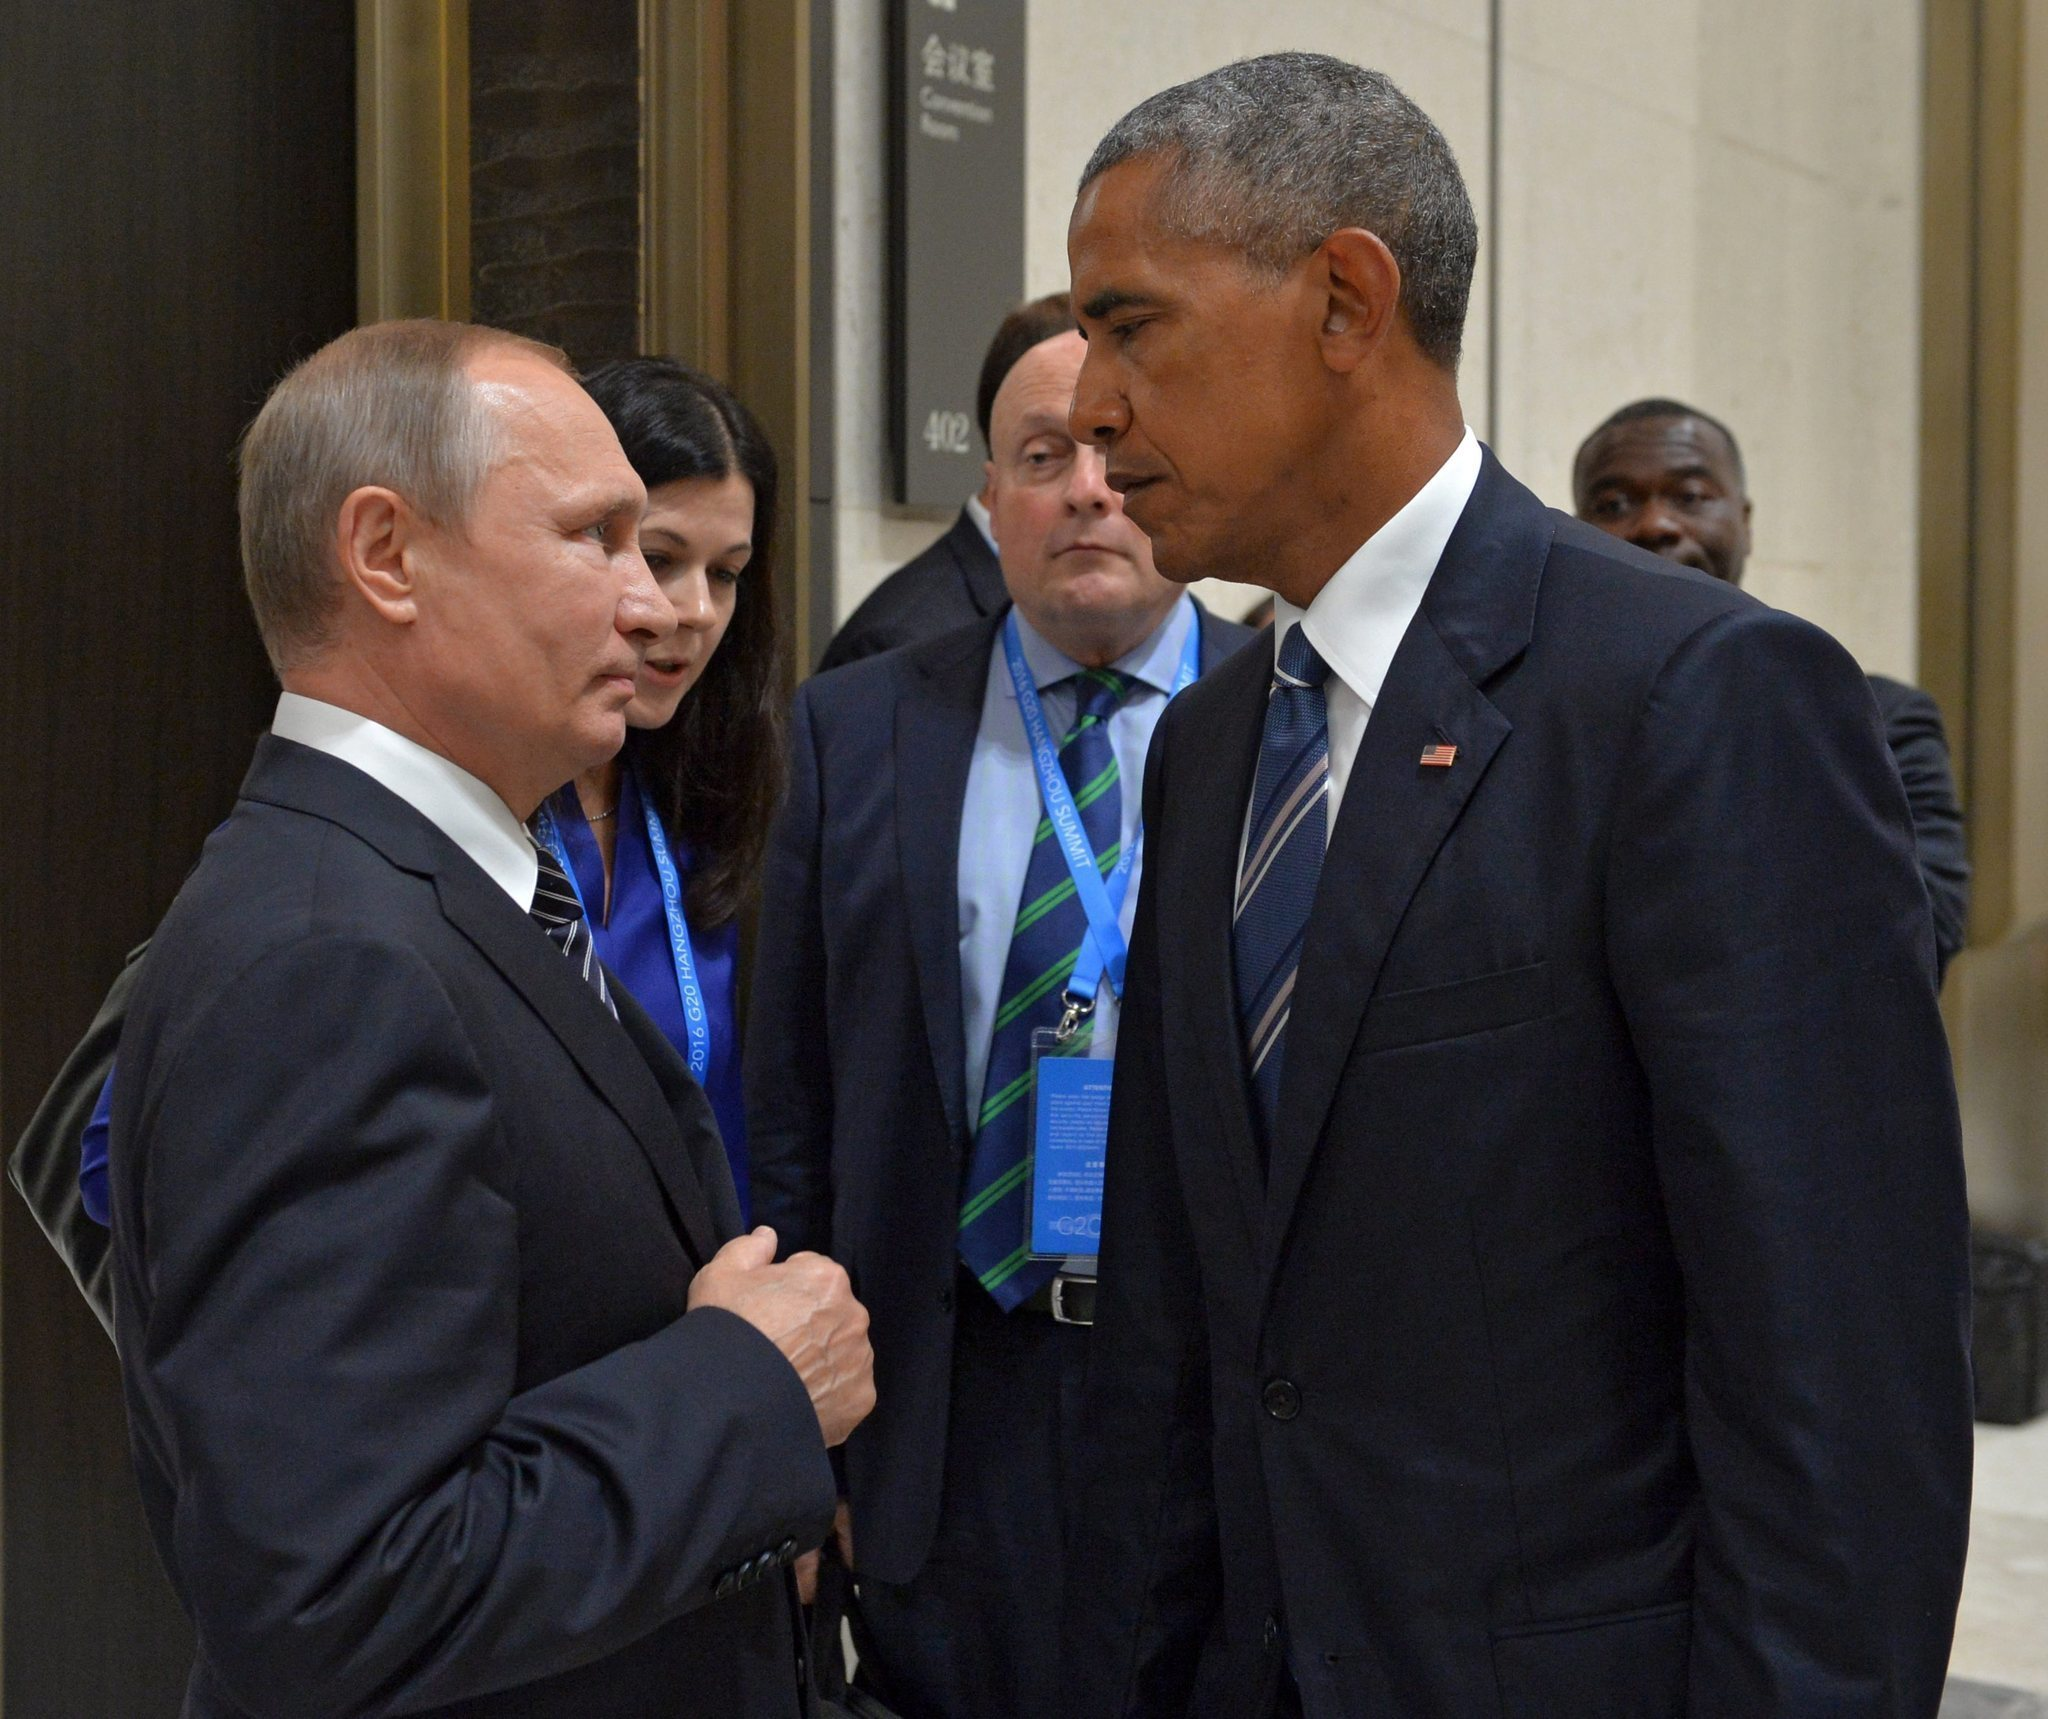 Obama Claims He Confronted Putin